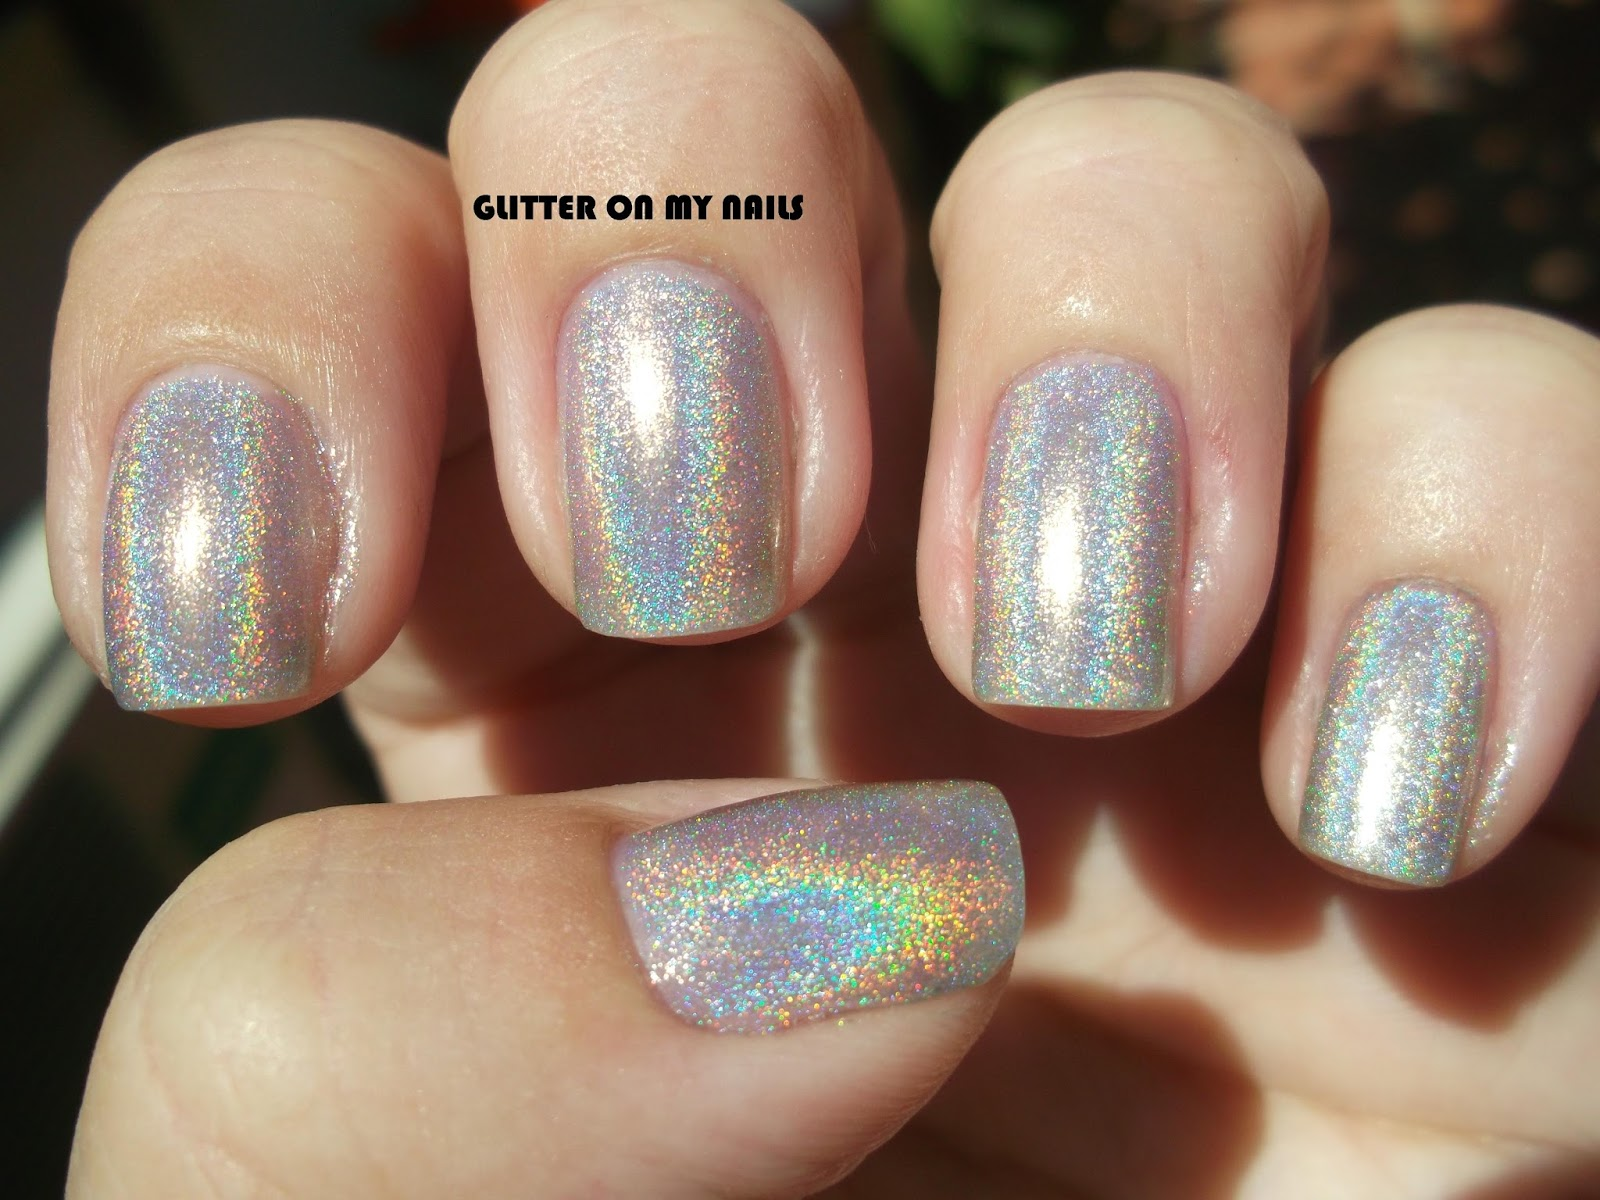 GLITTER ON MY NAILS: BPS ESMALTE HOLOGRÁFICO #1